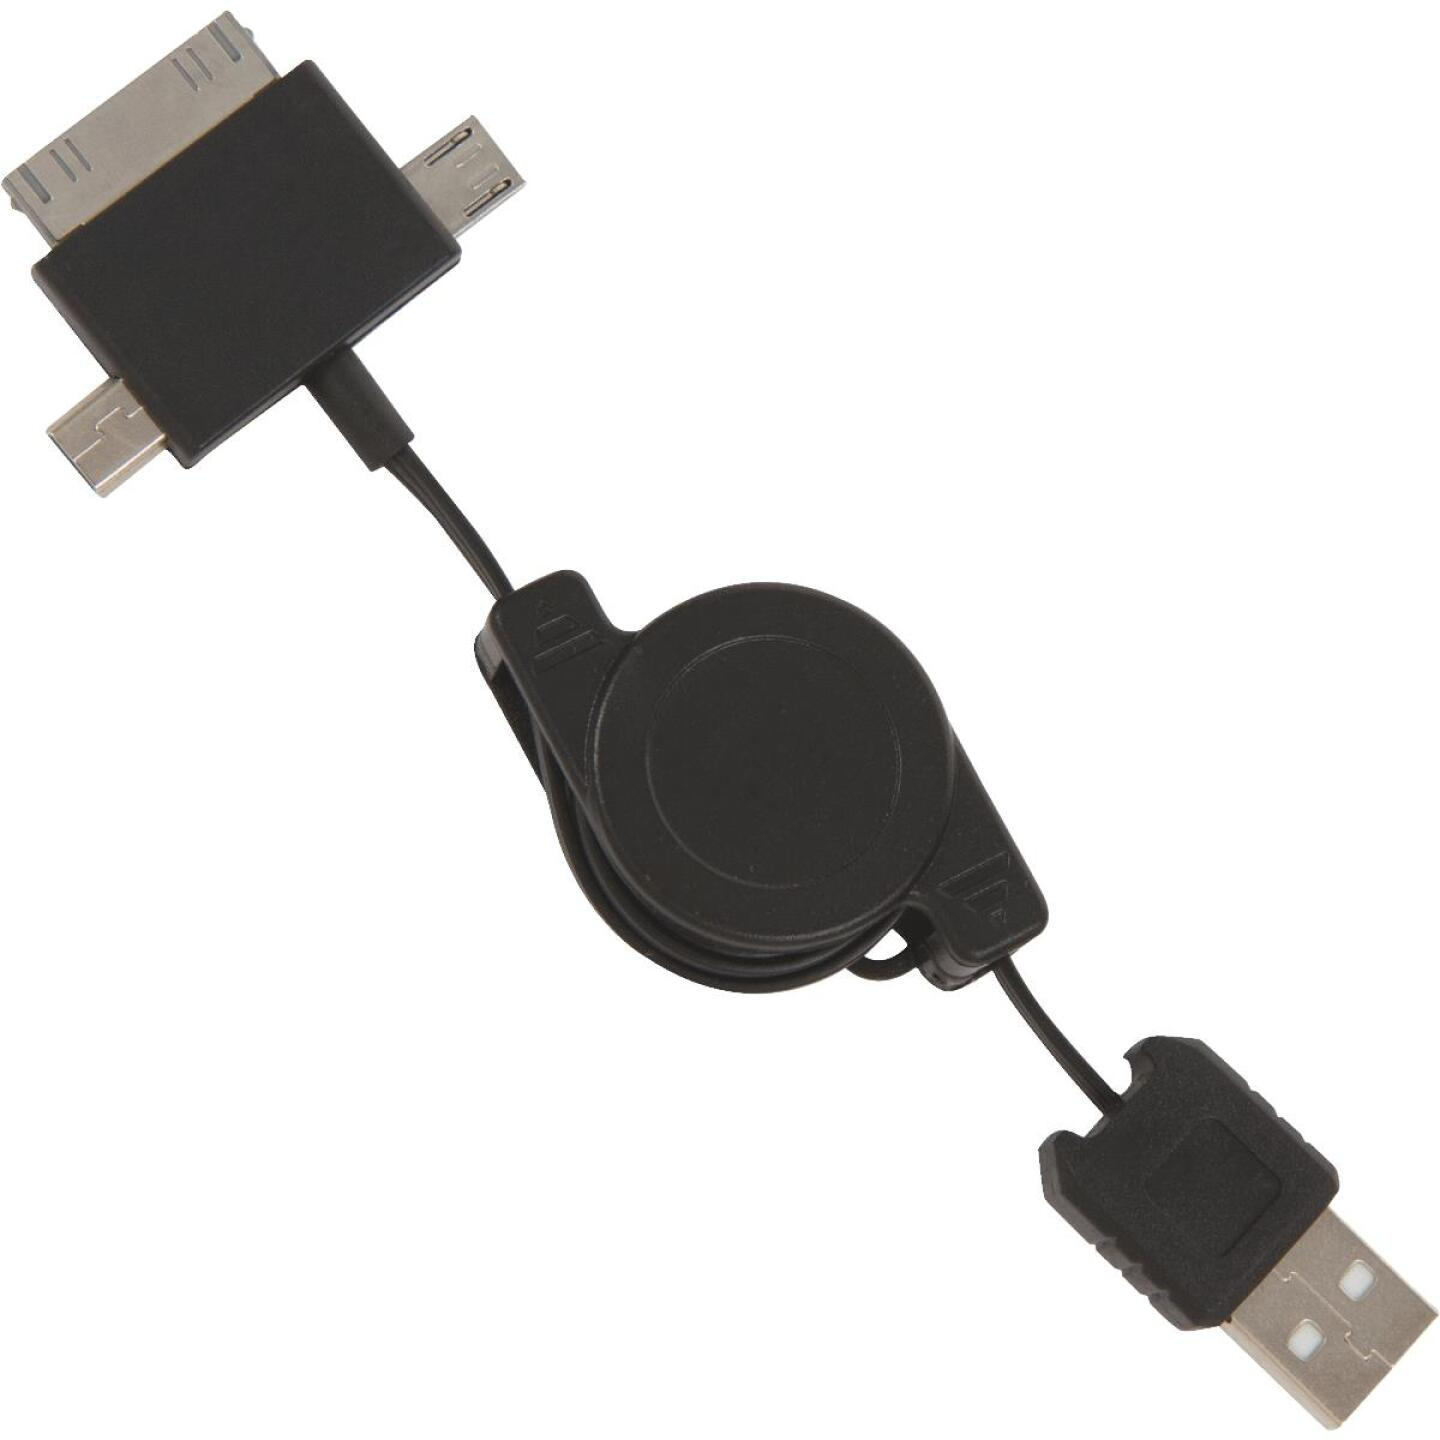 Aries 3-in-1 Multi-Tip Micro USB, Mini USB, Apple 30-Pin Black Charger Image 1